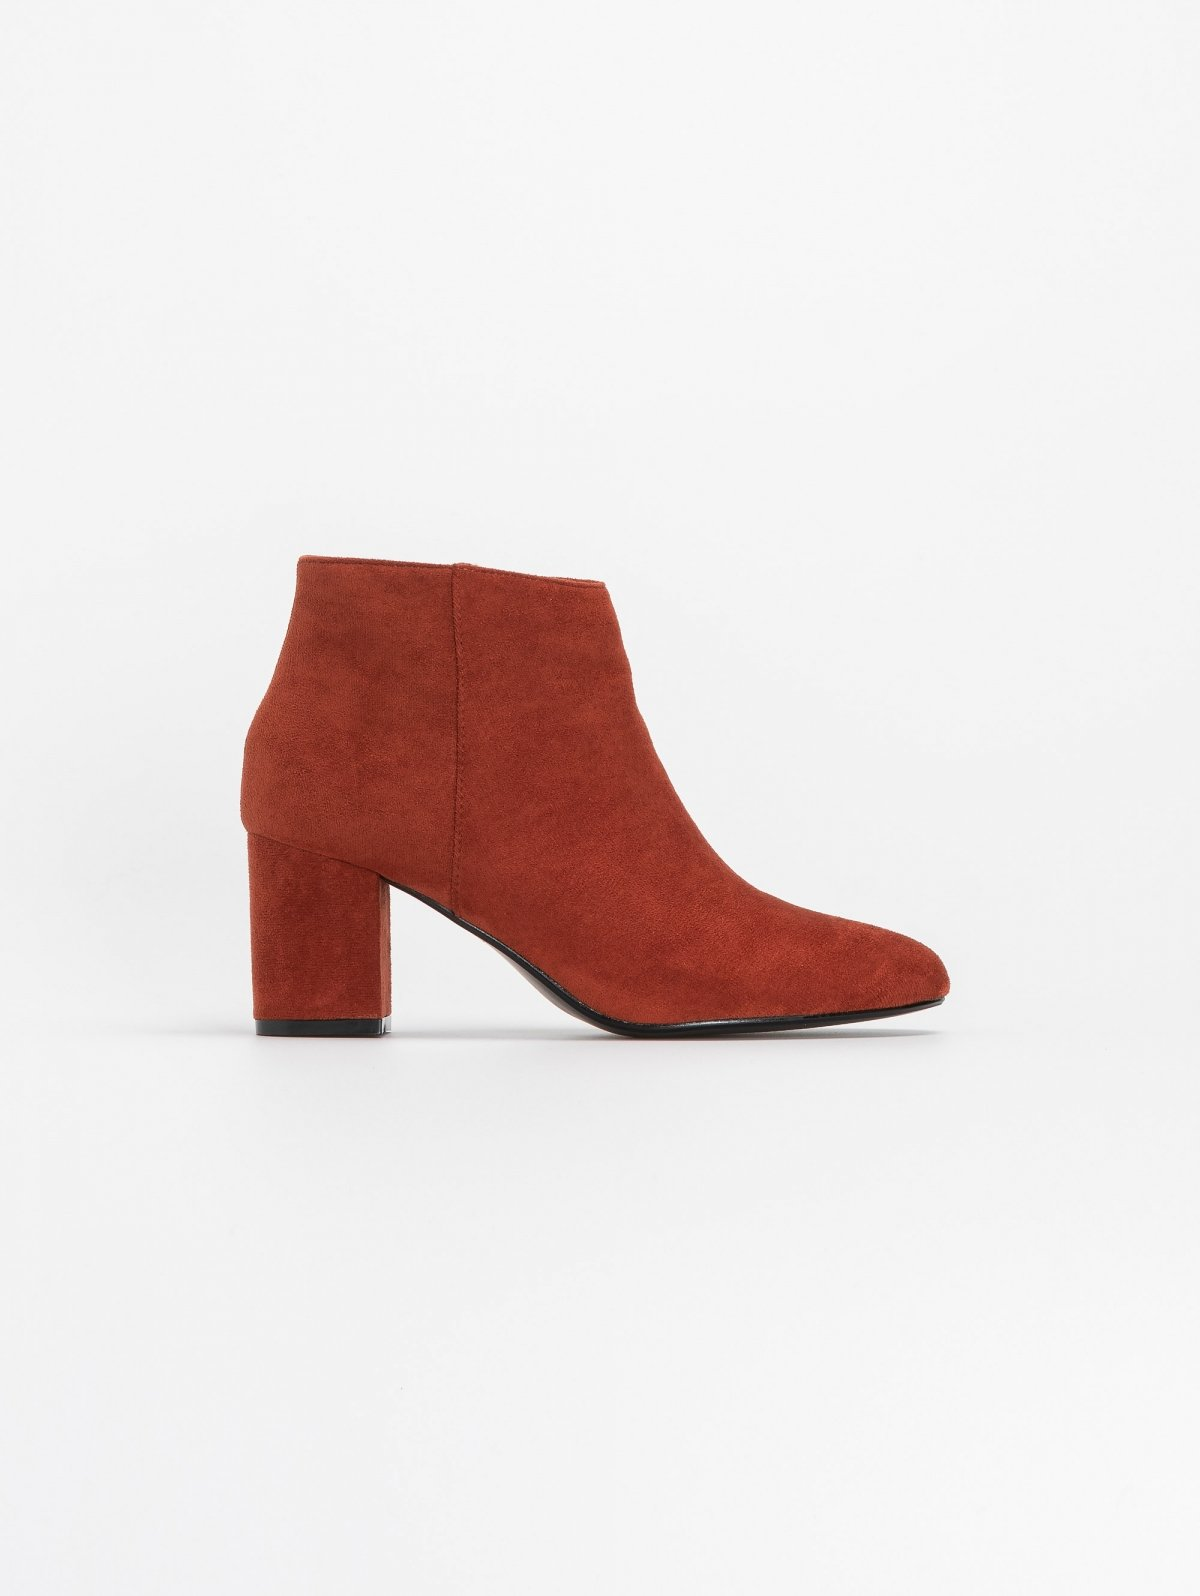 Basic suede ankle boots - Κεραμιδί